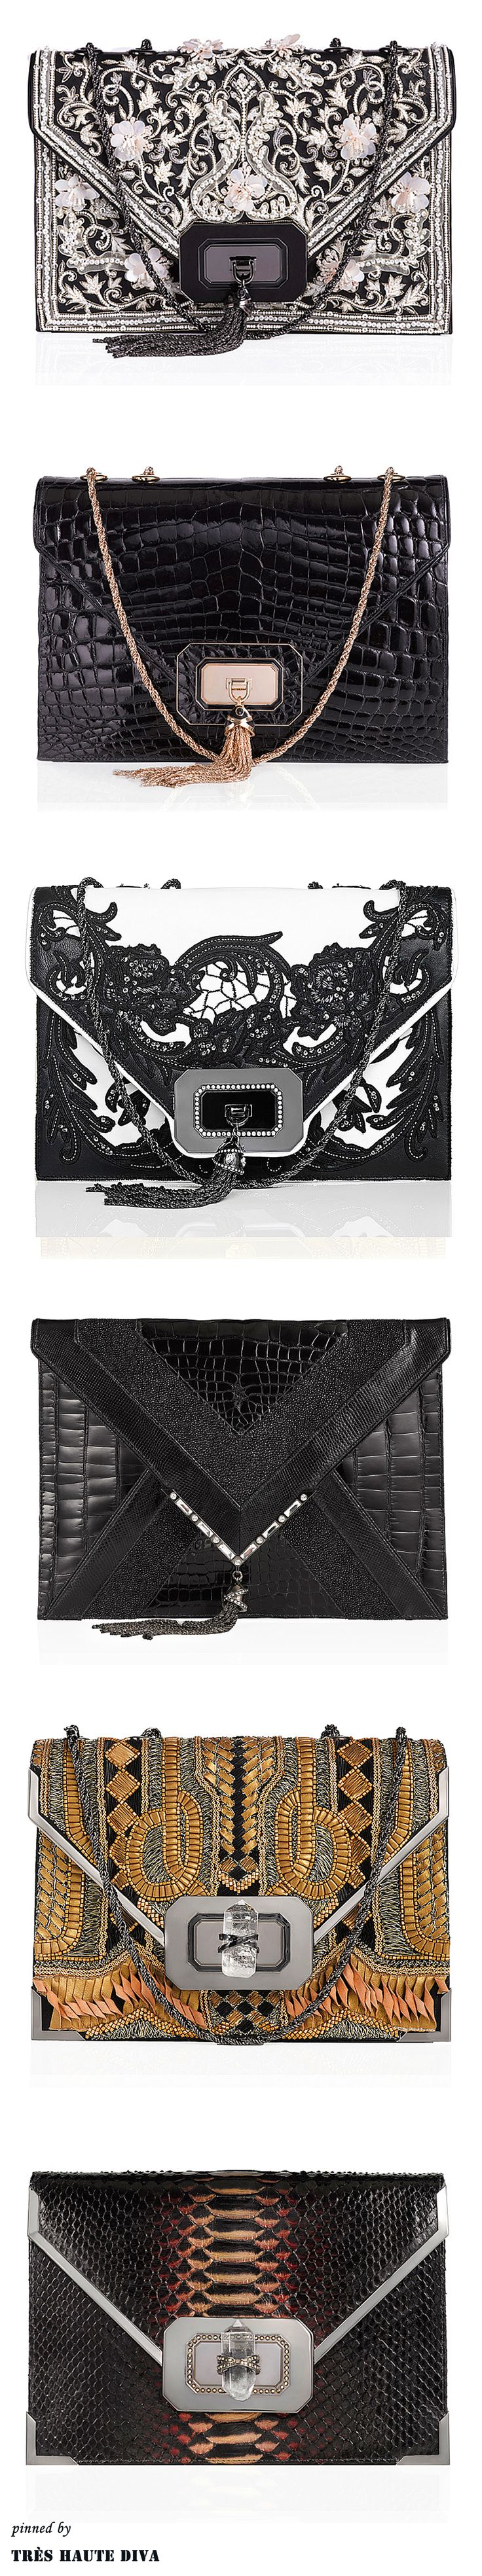 Marchesa Evening Bags S/S 2014